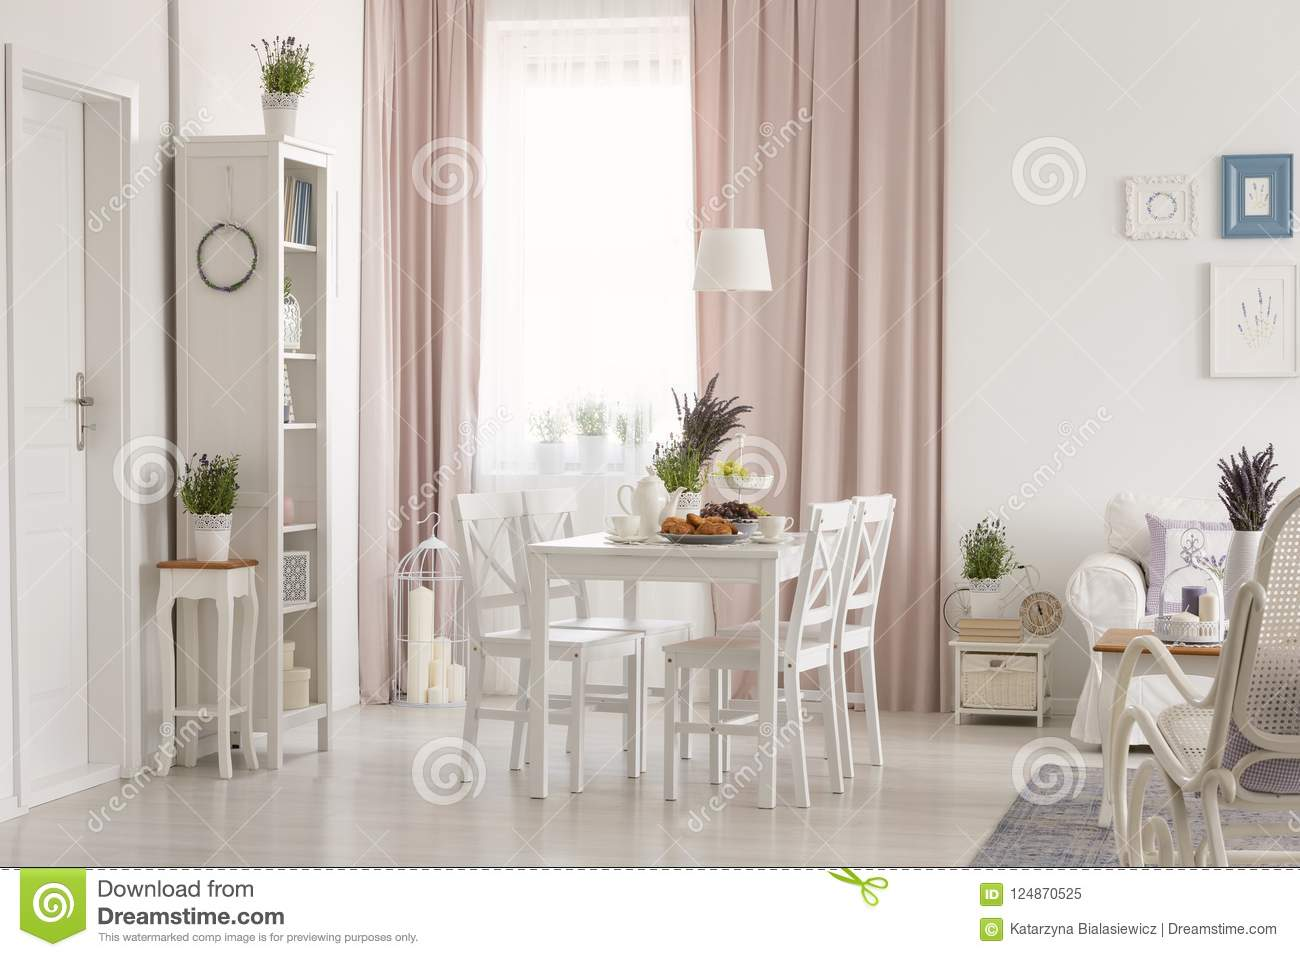 White Flat Interior With Window With Curtains, Fresh ...